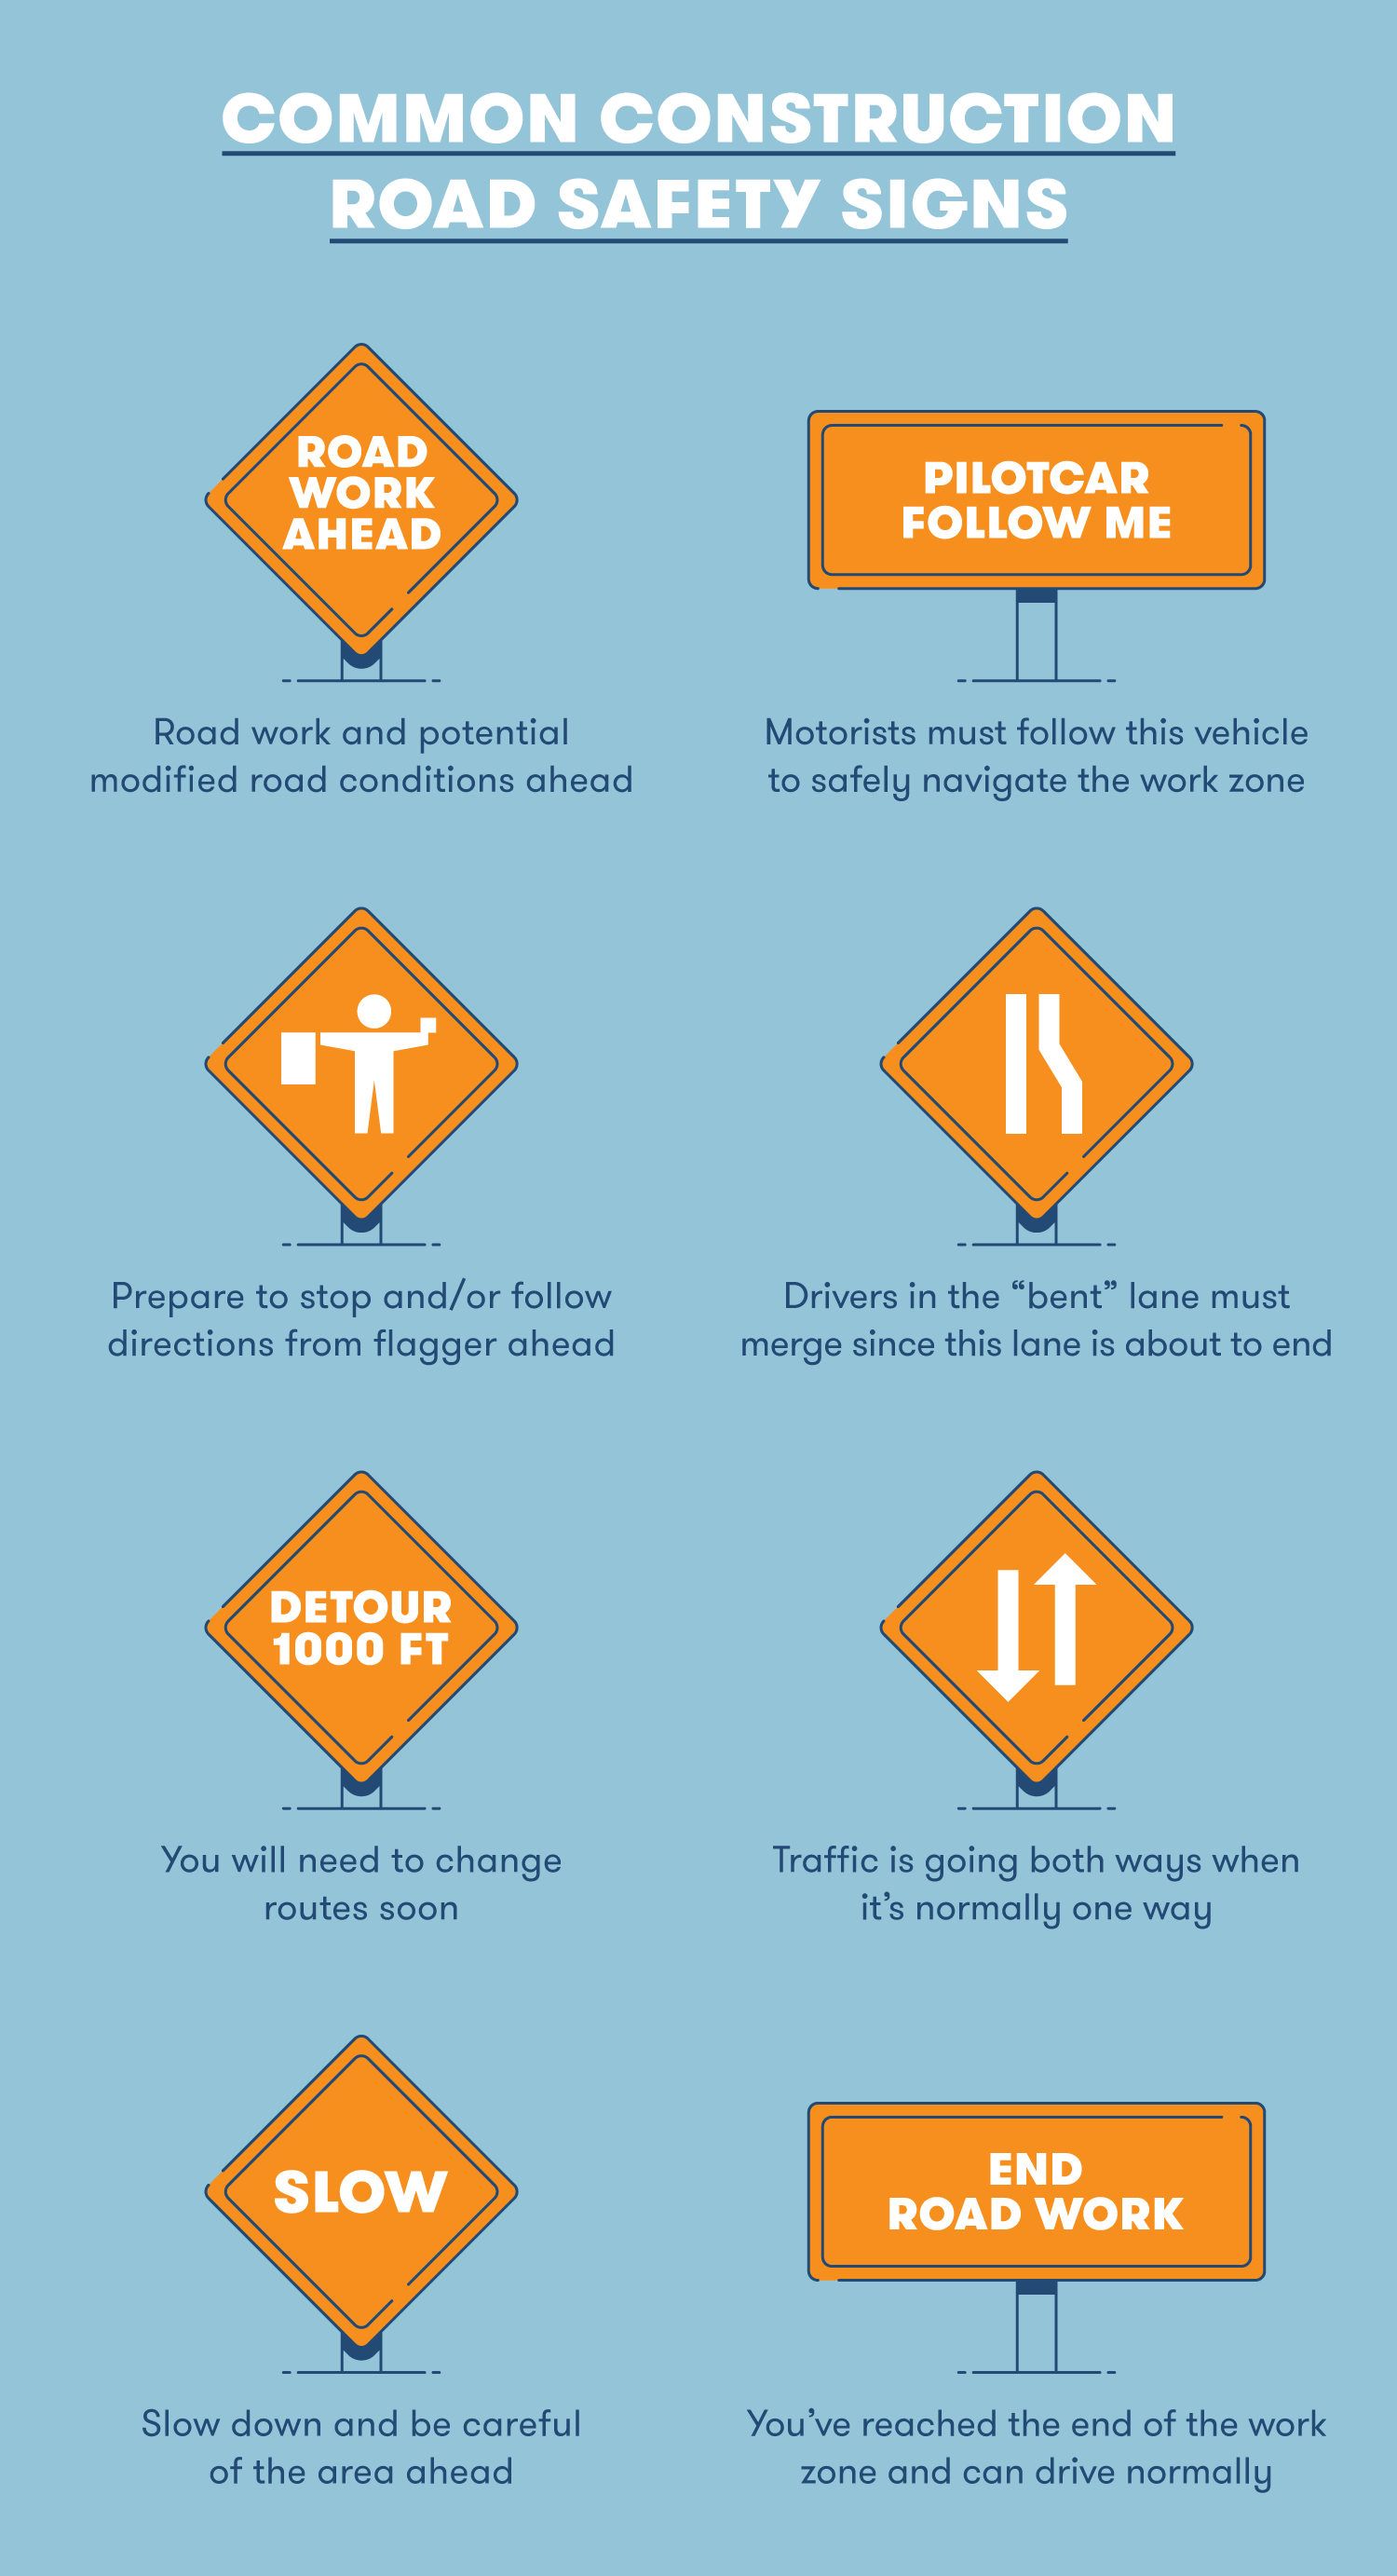 common construction road safety signs